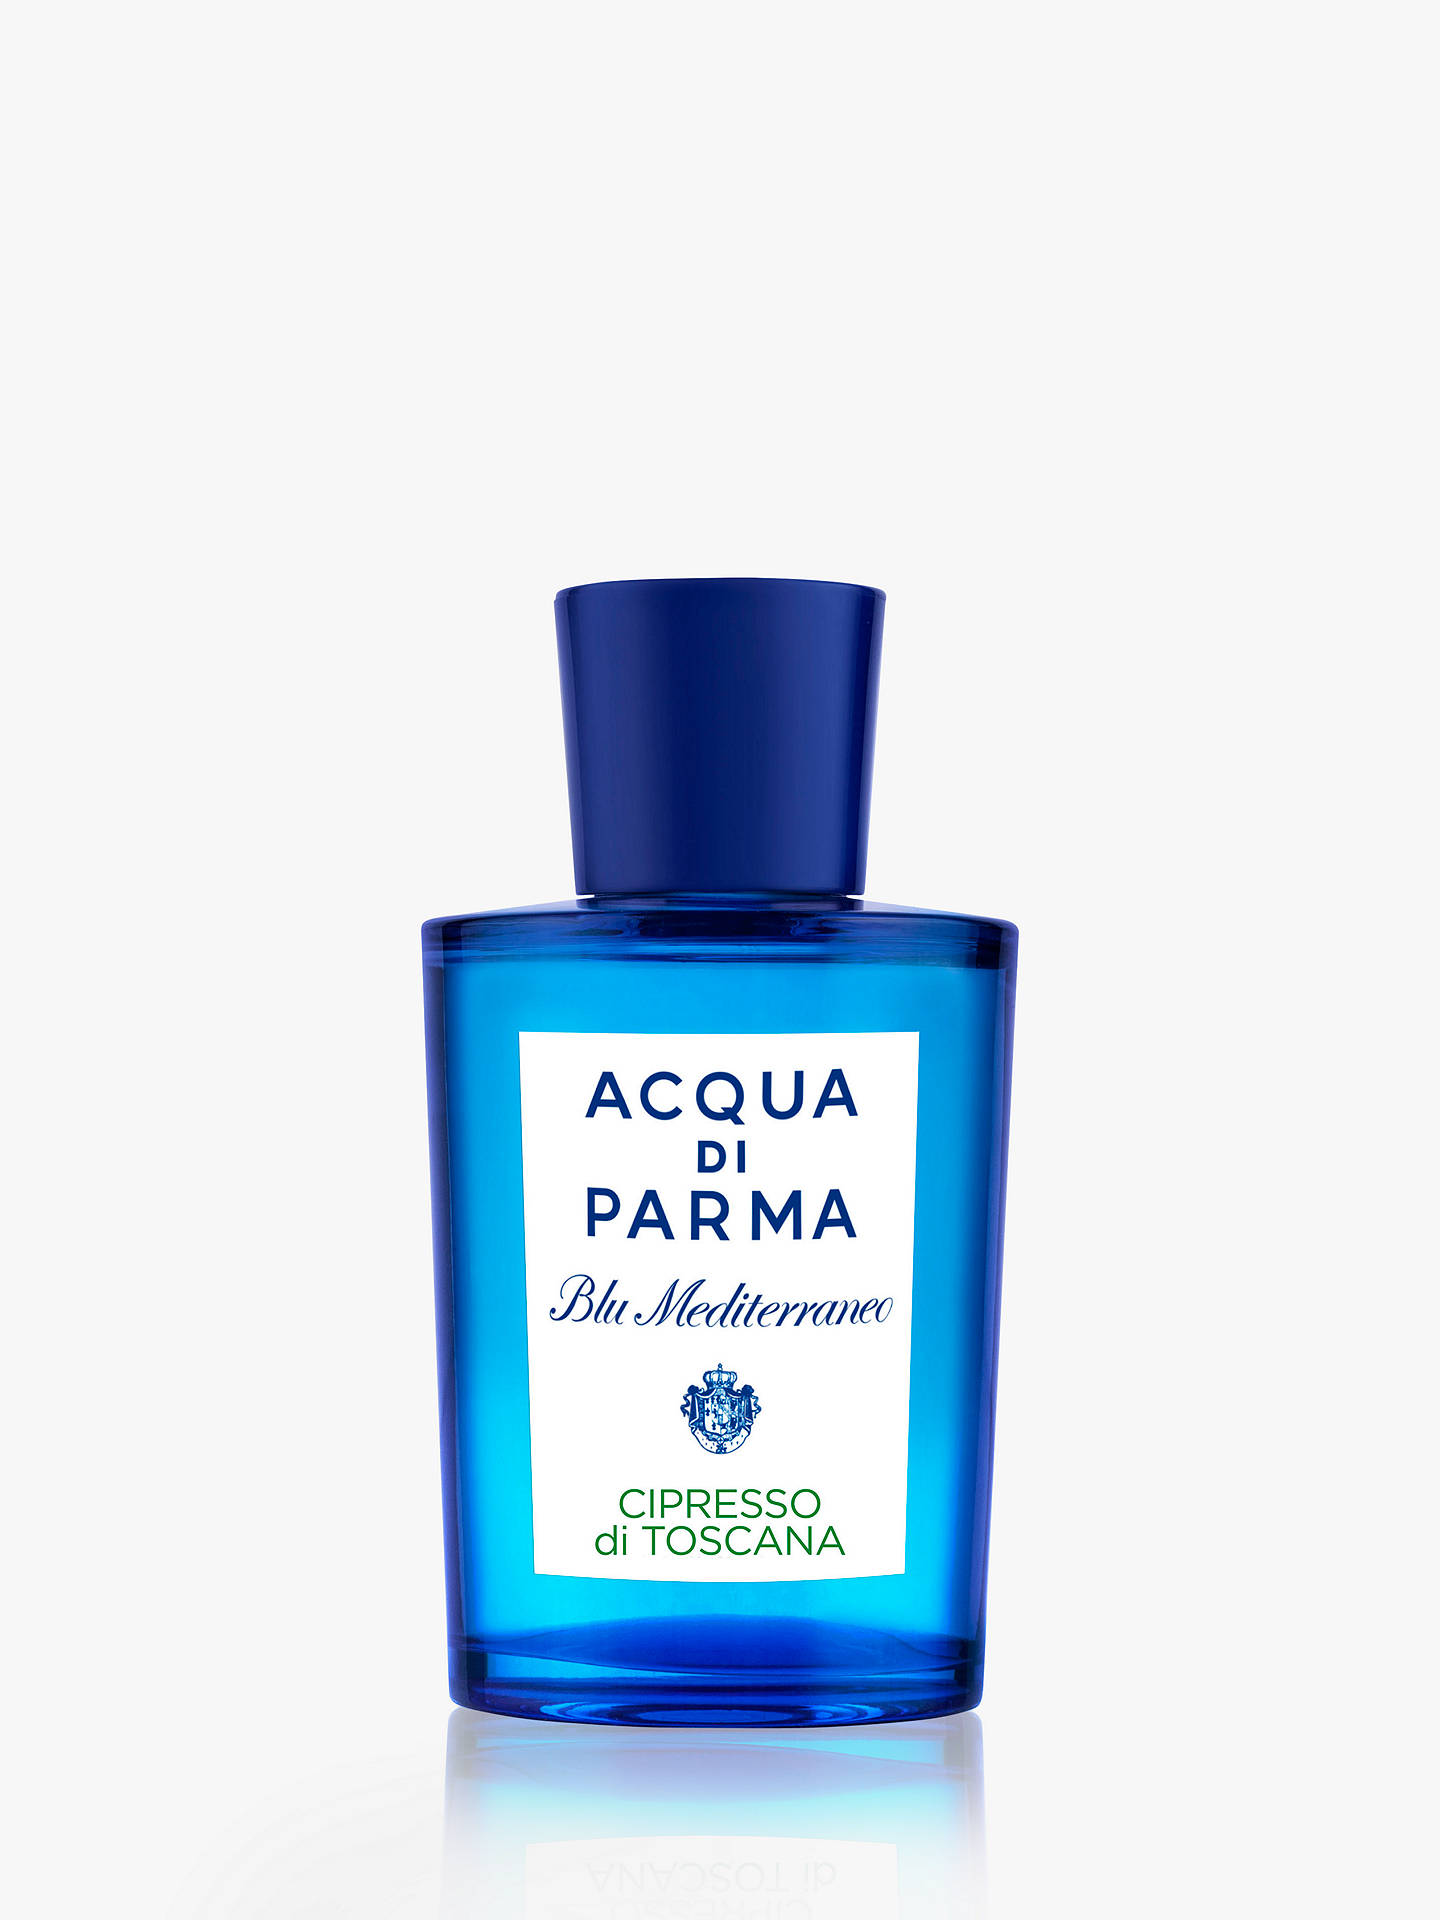 Buy Acqua di Parma Cipresso di Toscana Eau de Toilette, 75ml Online at johnlewis.com